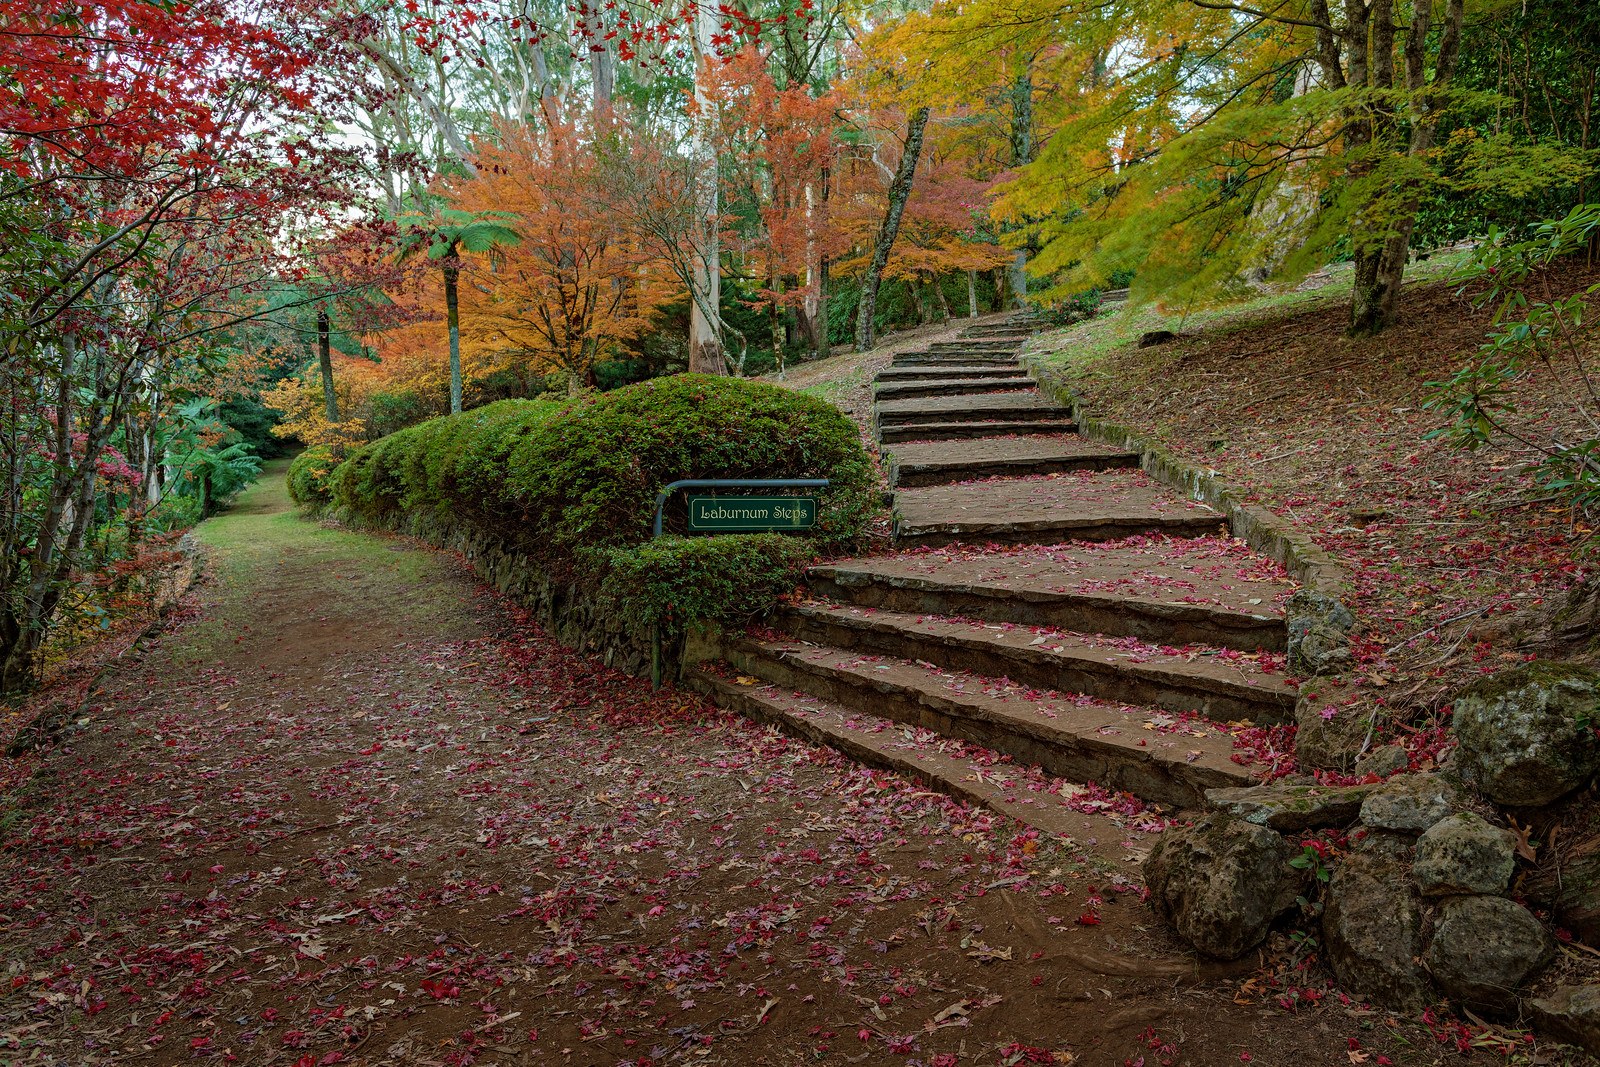 Laburnum Steps Revisited